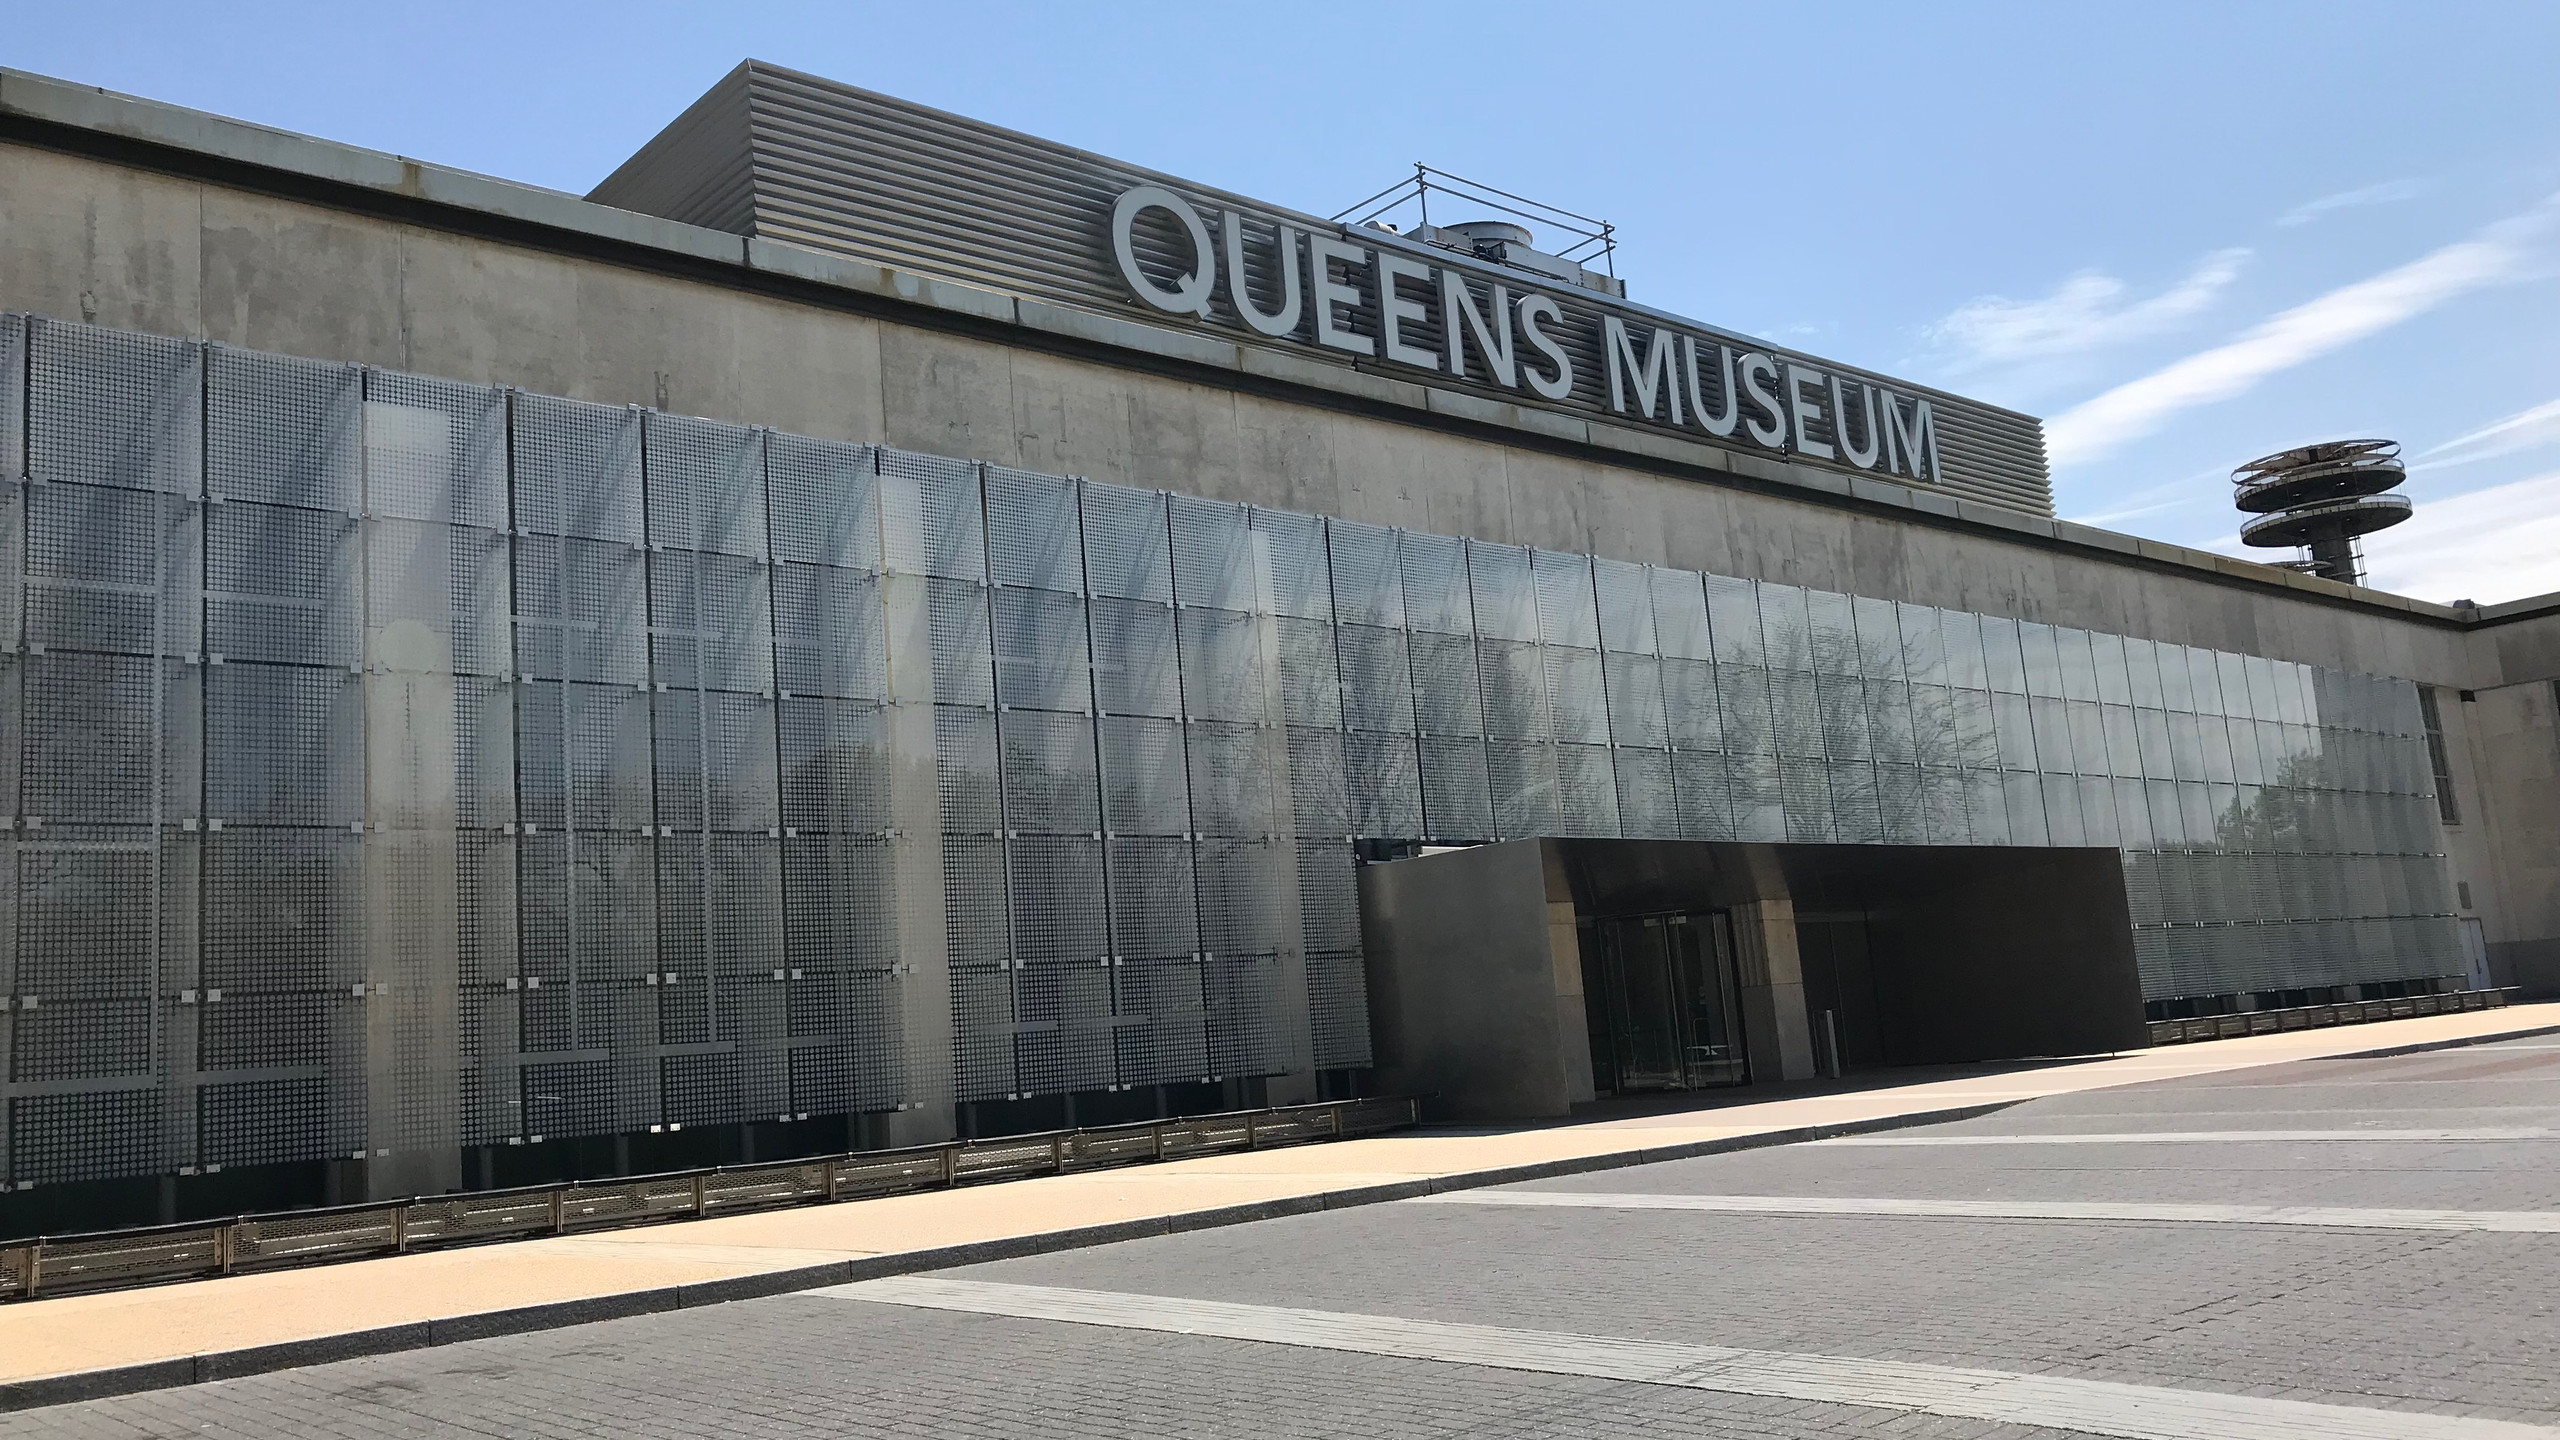 The Queens Museum NYC